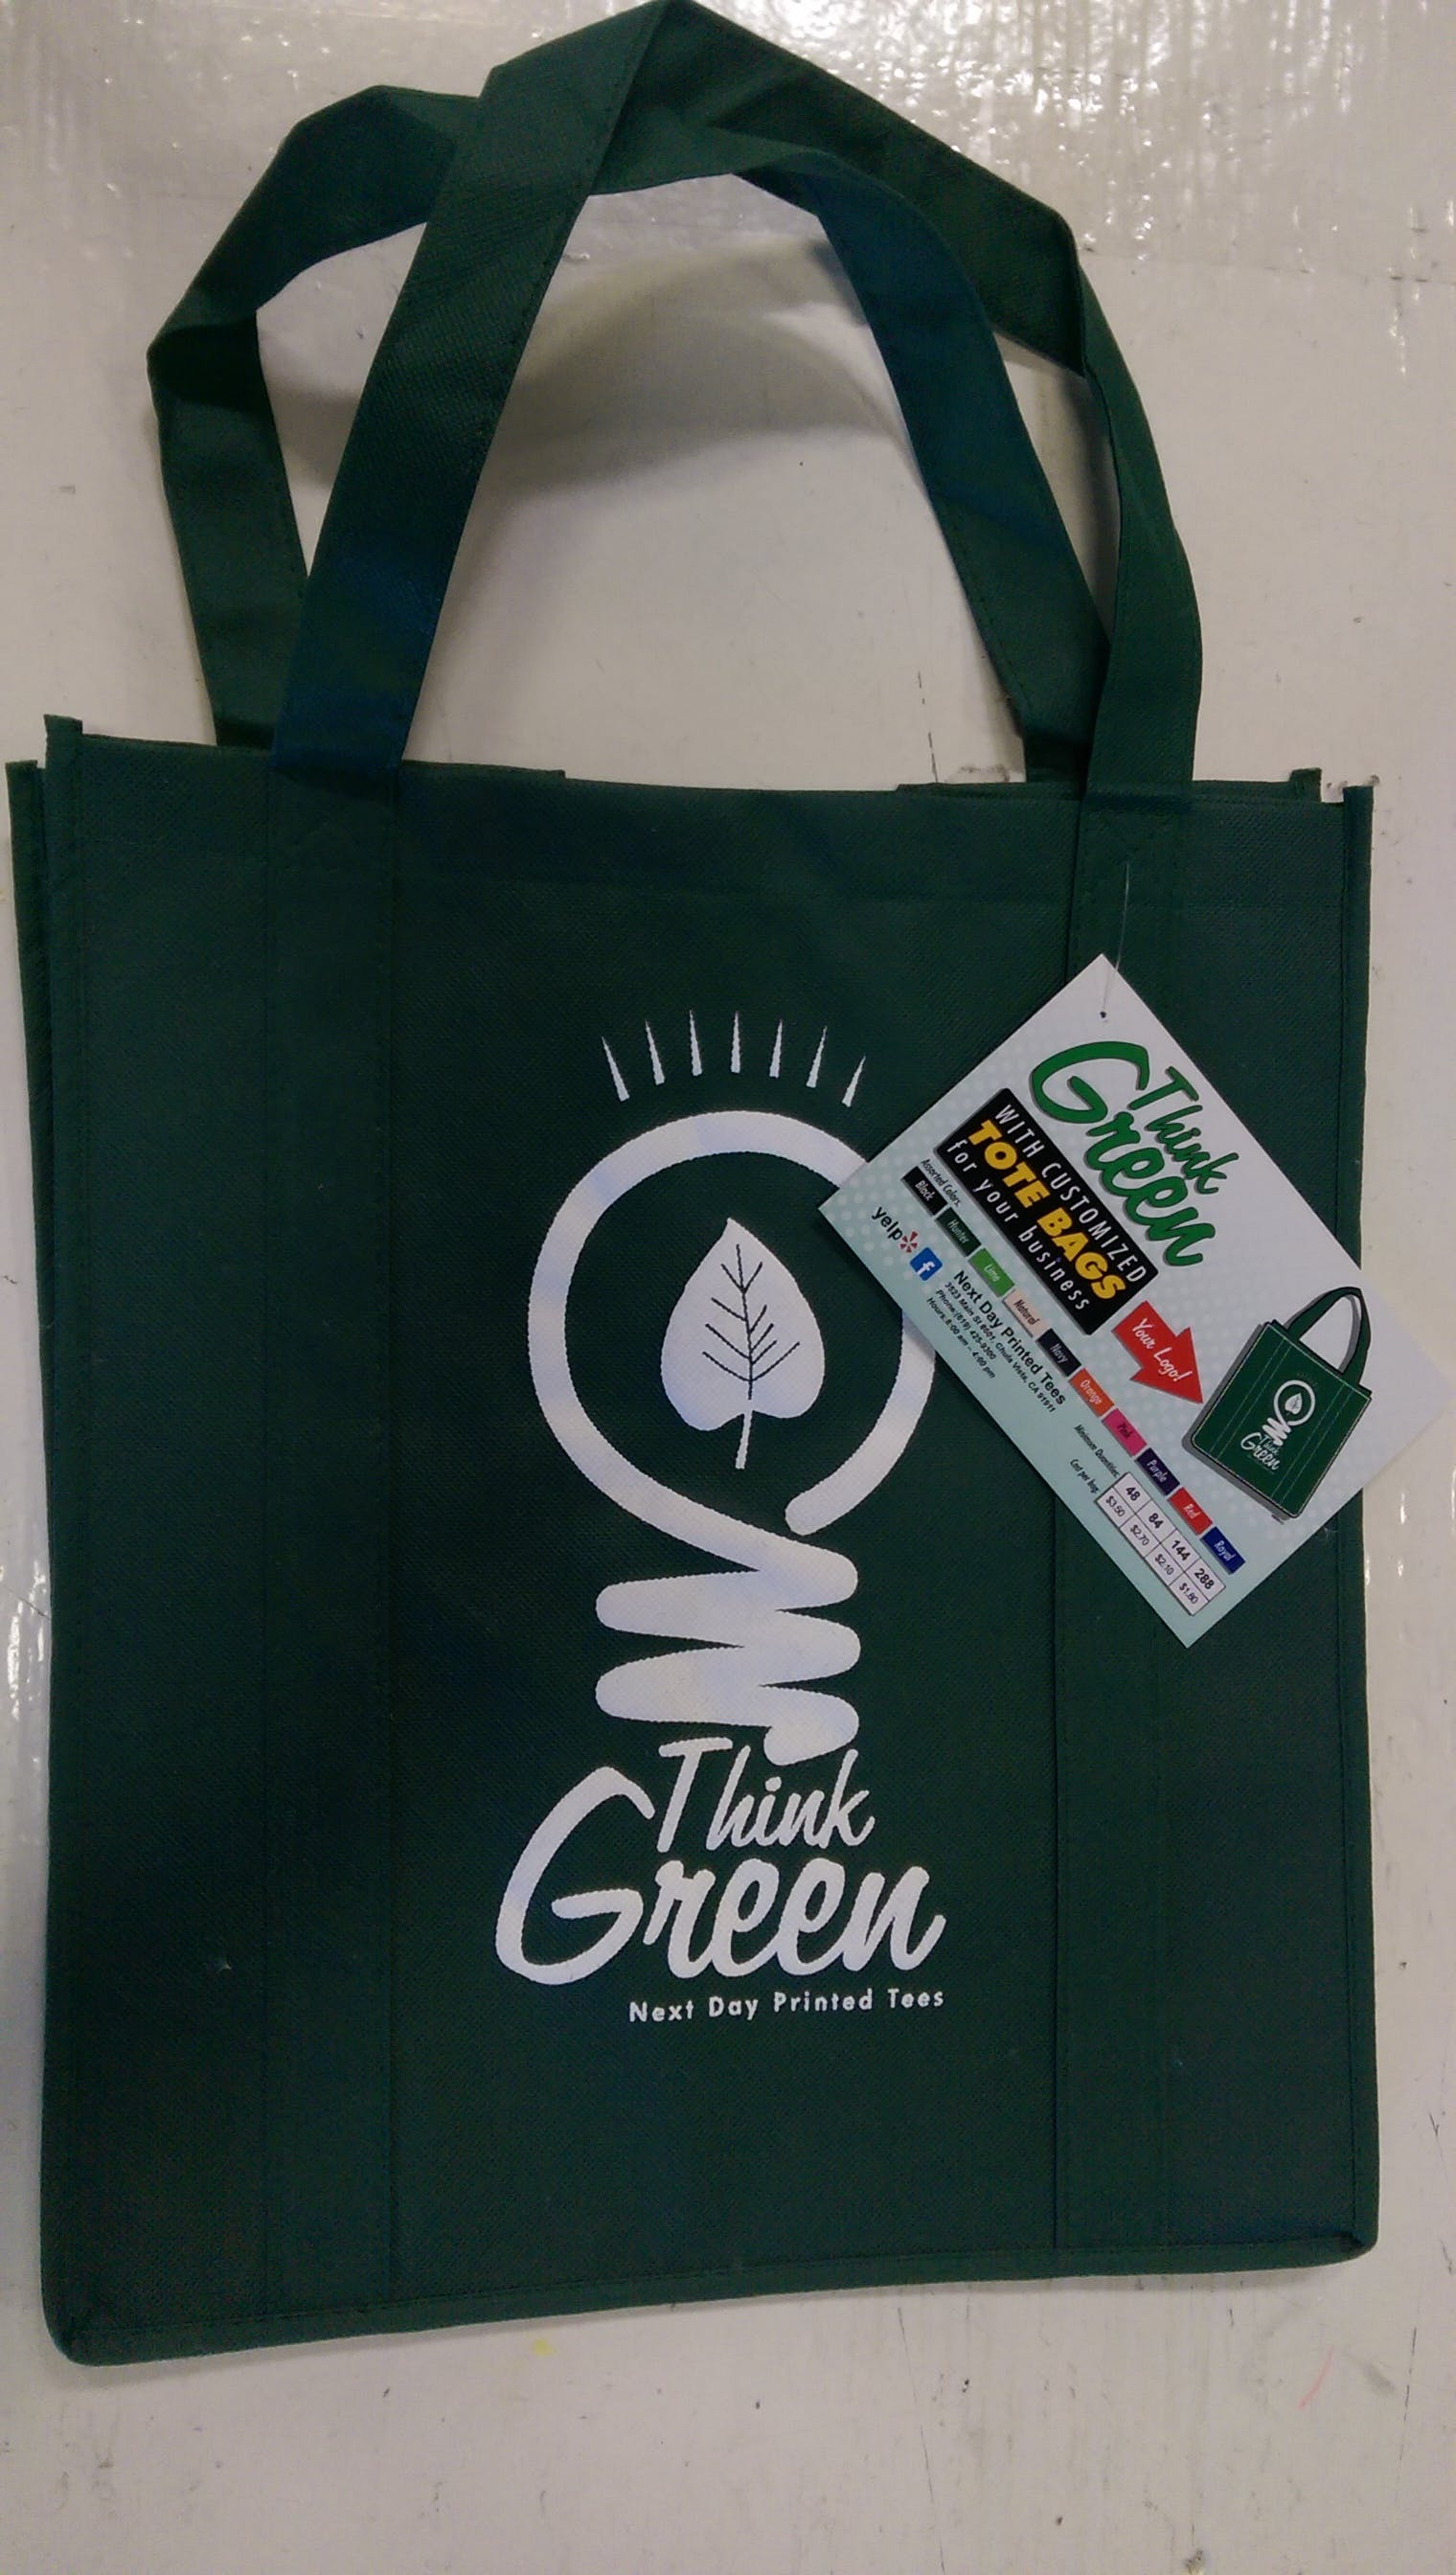 Grocery Tote Bags.  Promotional apparel sold by Next Day Printed Tees